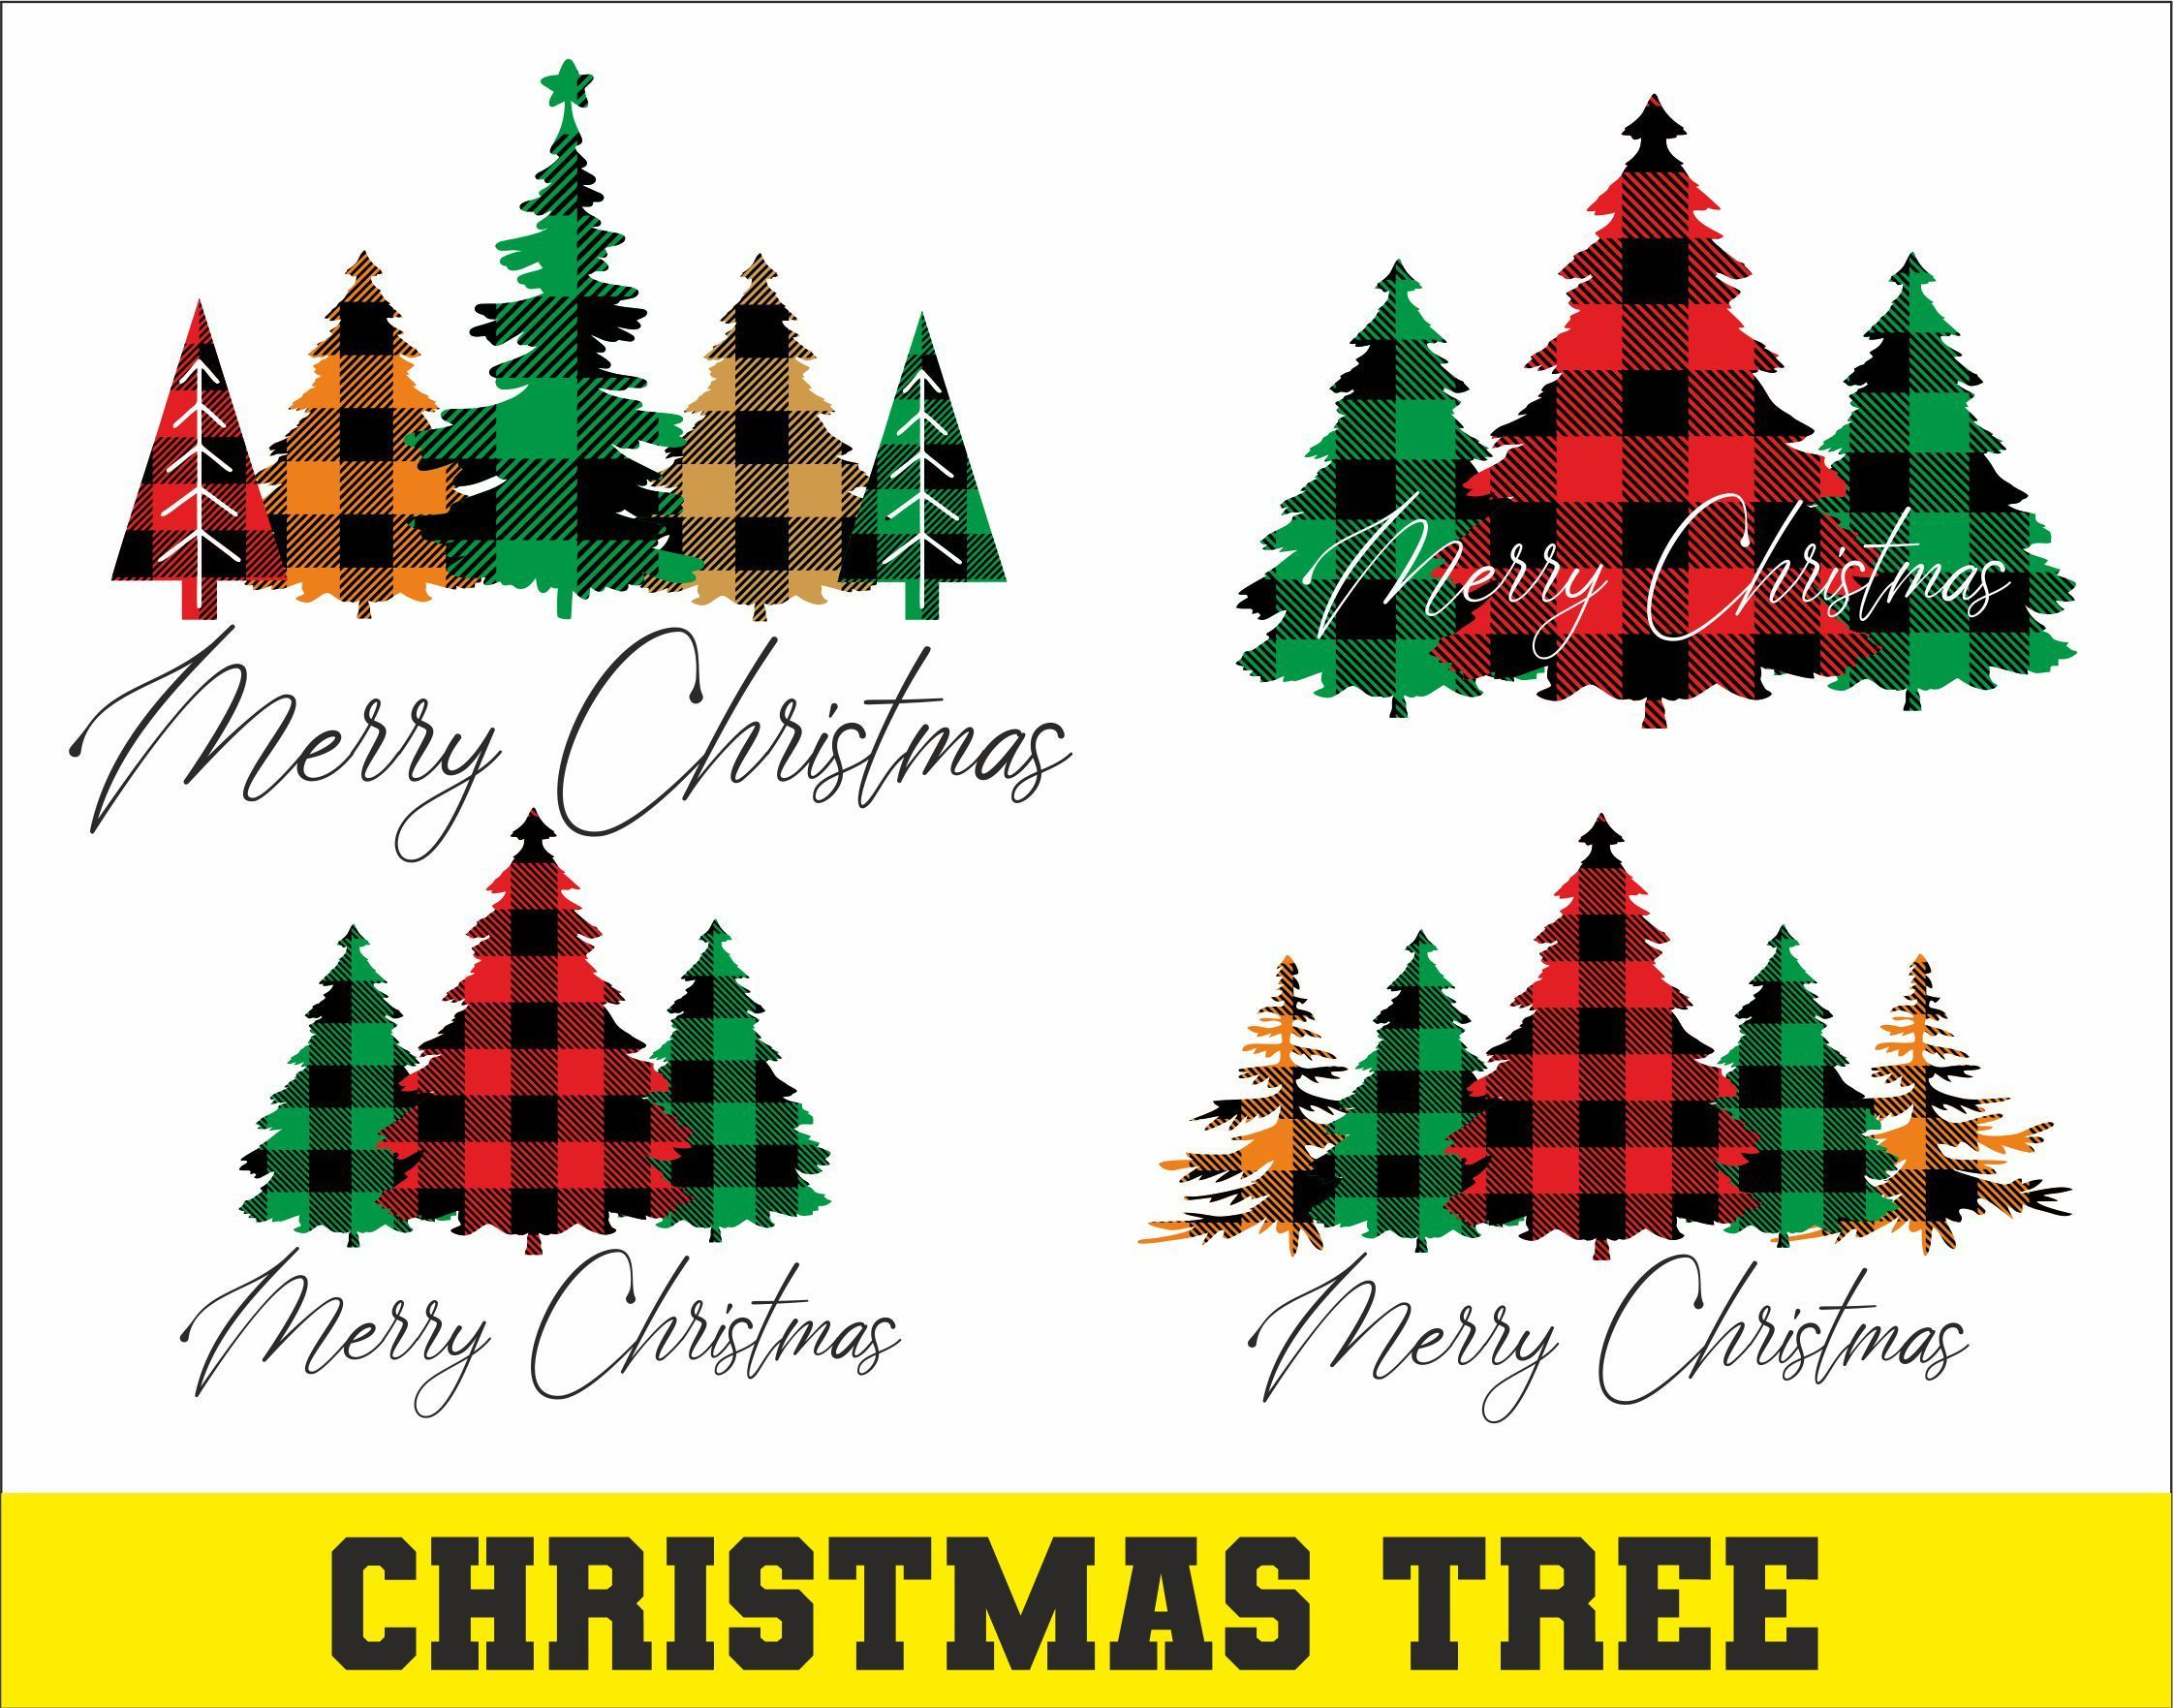 Pine Tree Svg Christmas Tree Svg Forest Svg Tree Svg Pine Trees Svg Chpine Tree Svg Christmas Pine Tree Svg Christmas In 2020 Tree Svg Christmas Tree Christmas